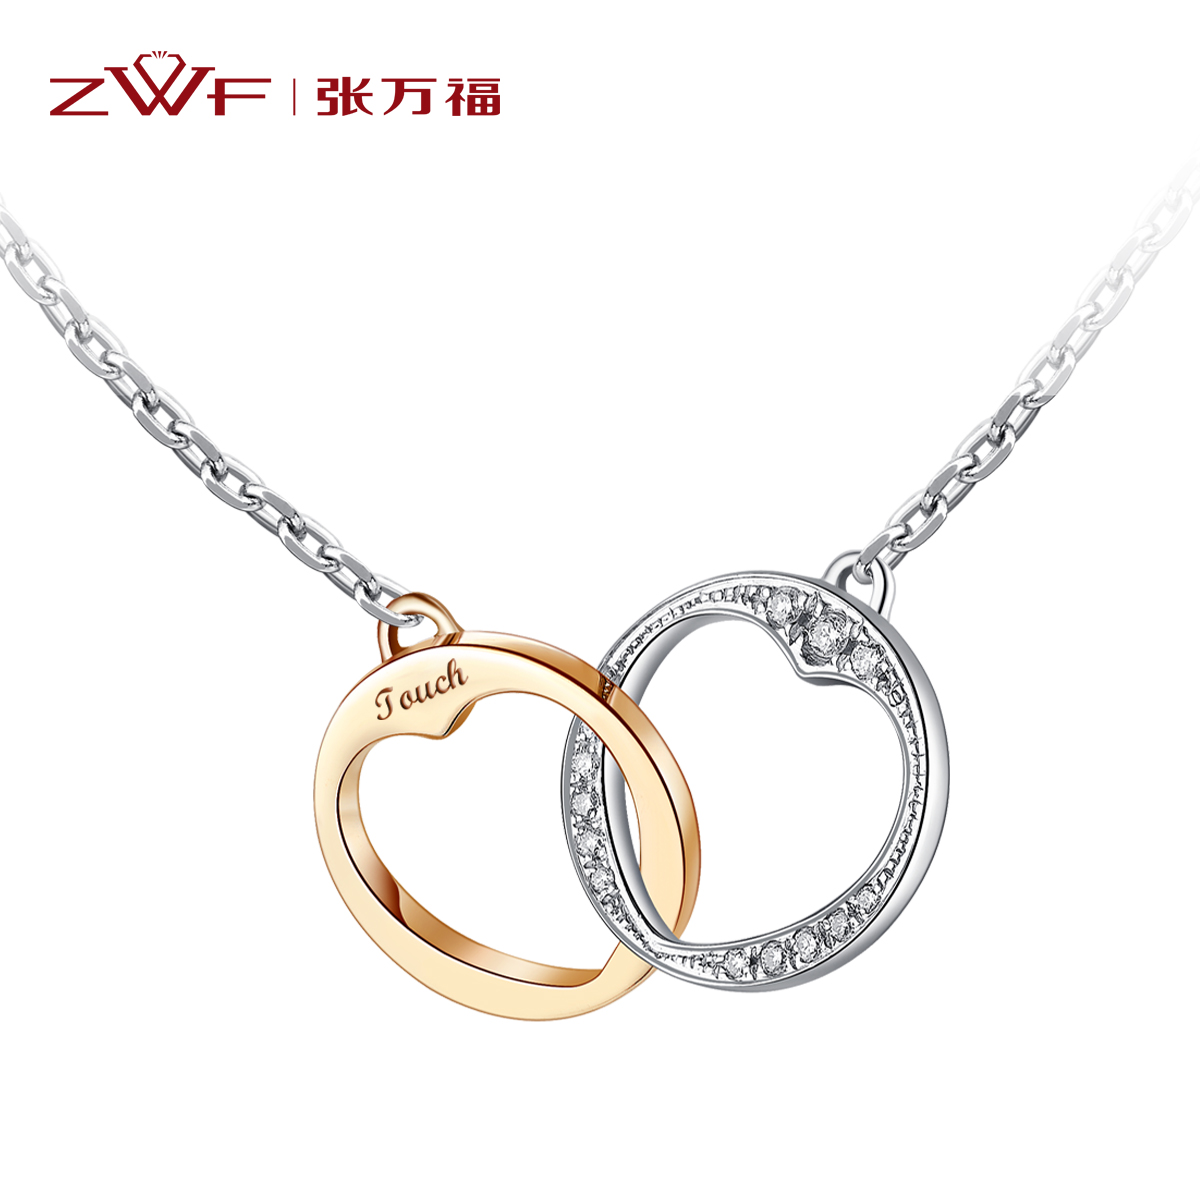 Zhang wanfu 18K two color diamond Platinum gold classic pendant necklace pendant necklace BLK design touches zwf